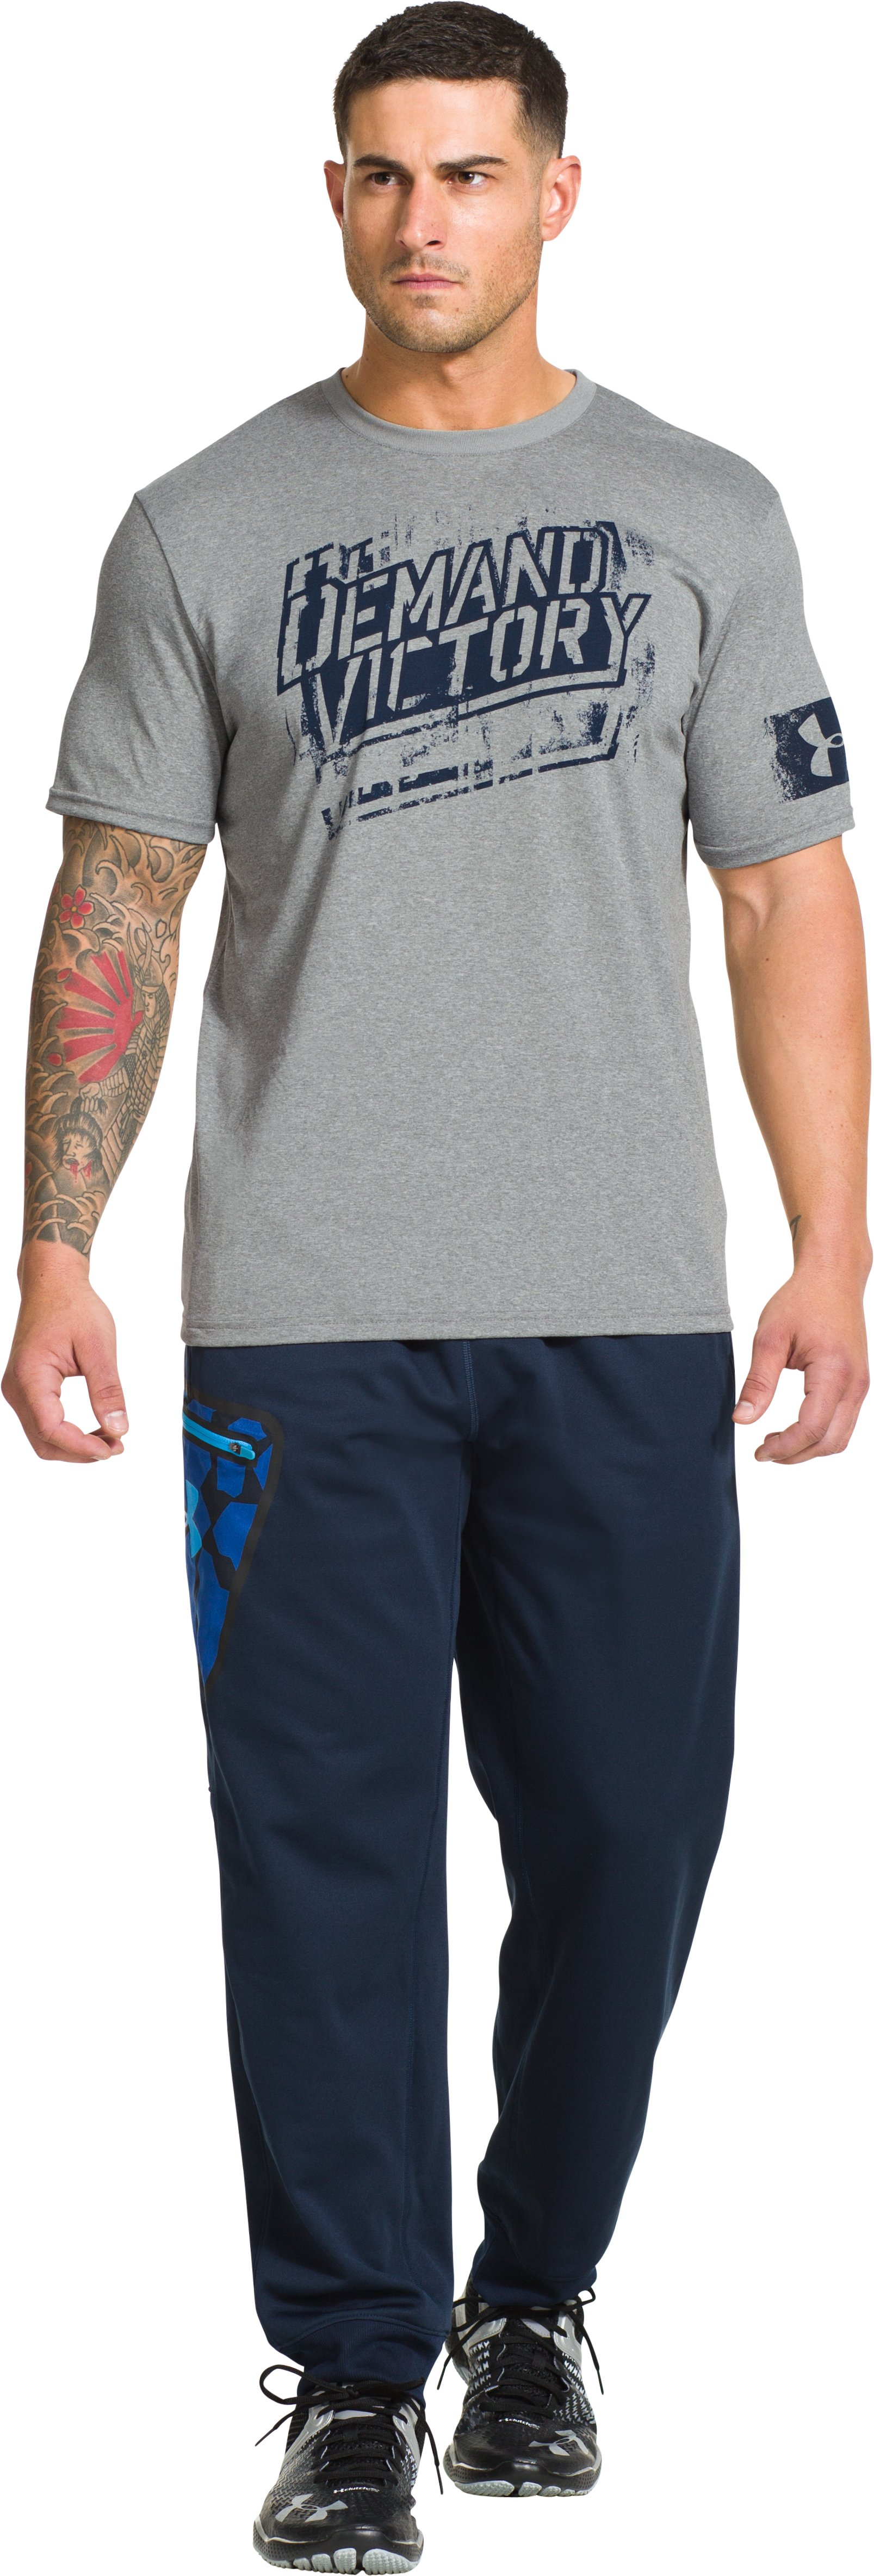 Men's UA Combine® Training Demand Victory T-Shirt, True Gray Heather, zoomed image